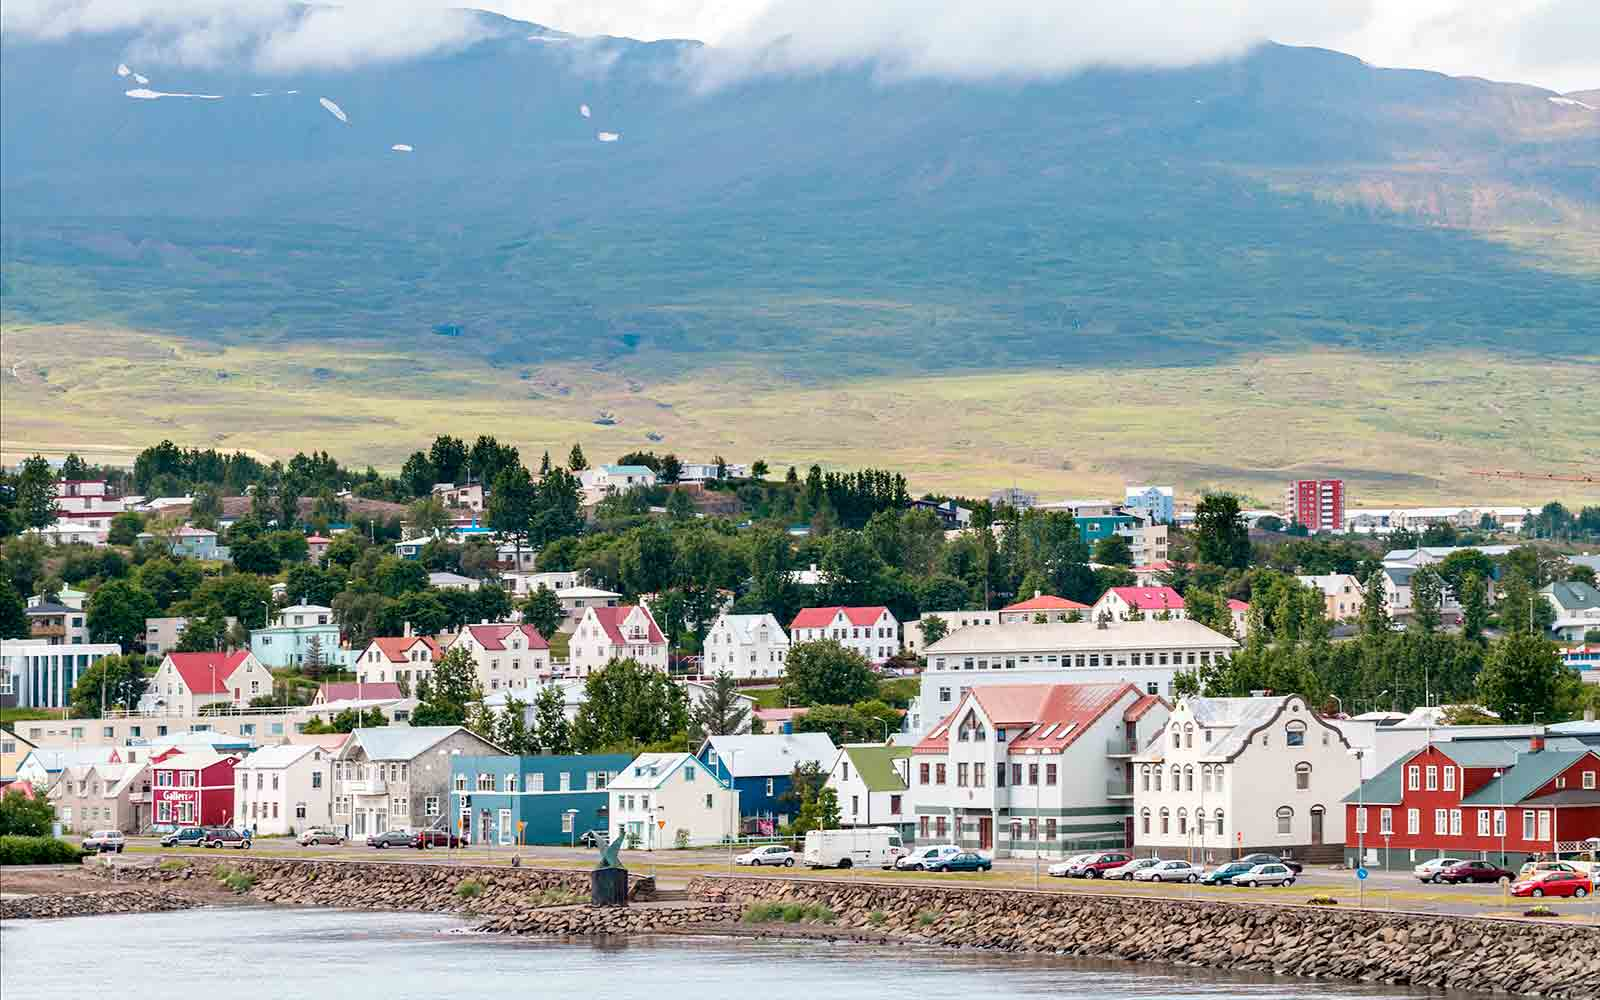 Air Iceland Launches First Domesic Route from Keflavik to Akureyri